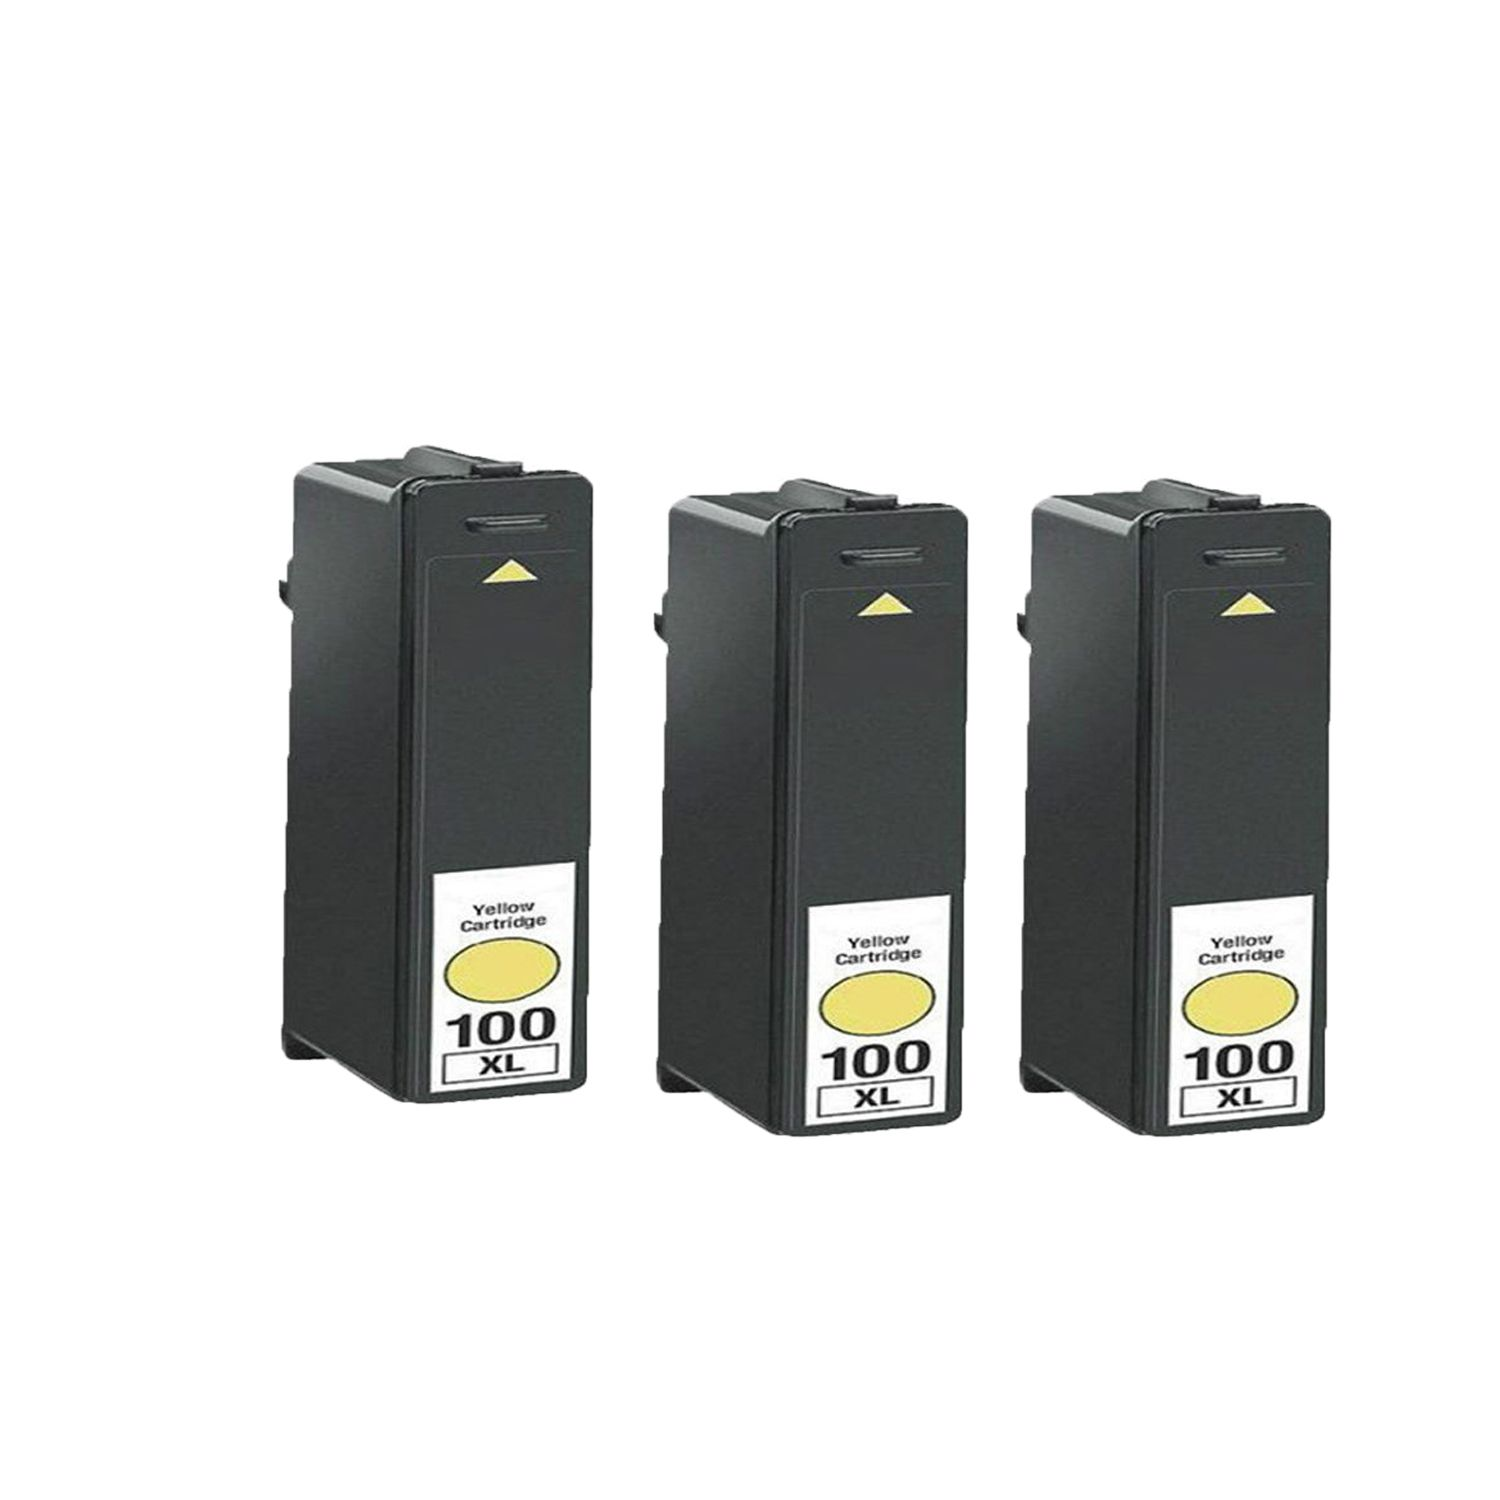 N 3PK 14N1071 Compatible Ink Cartridge For Lexmark S300 S301 S302 S305